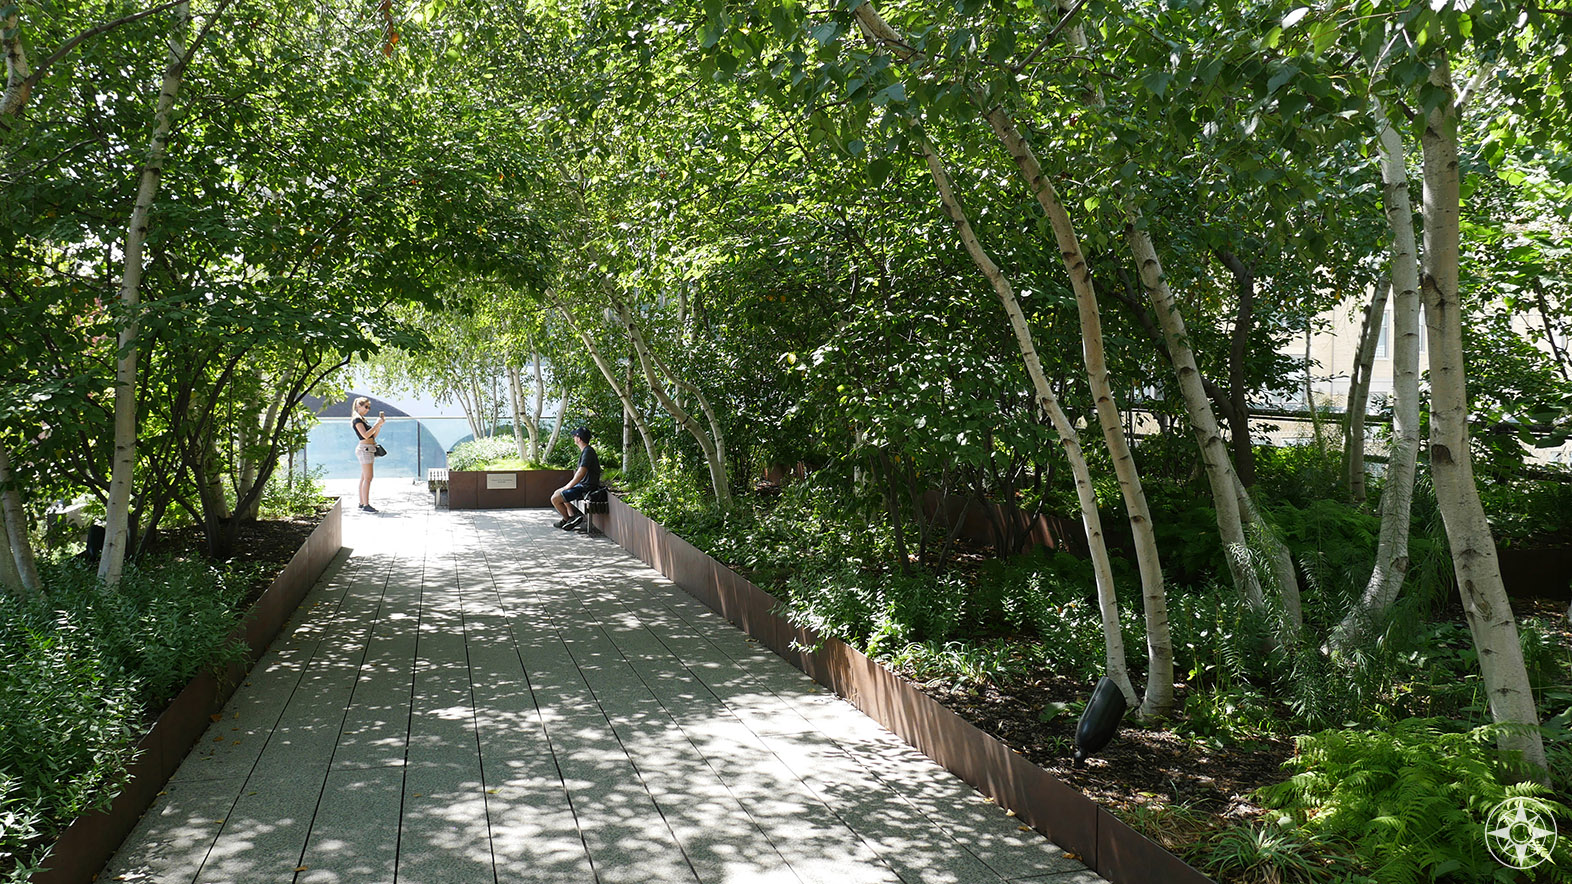 Gansevoort Woodland at the south end of The High Line in NYC.